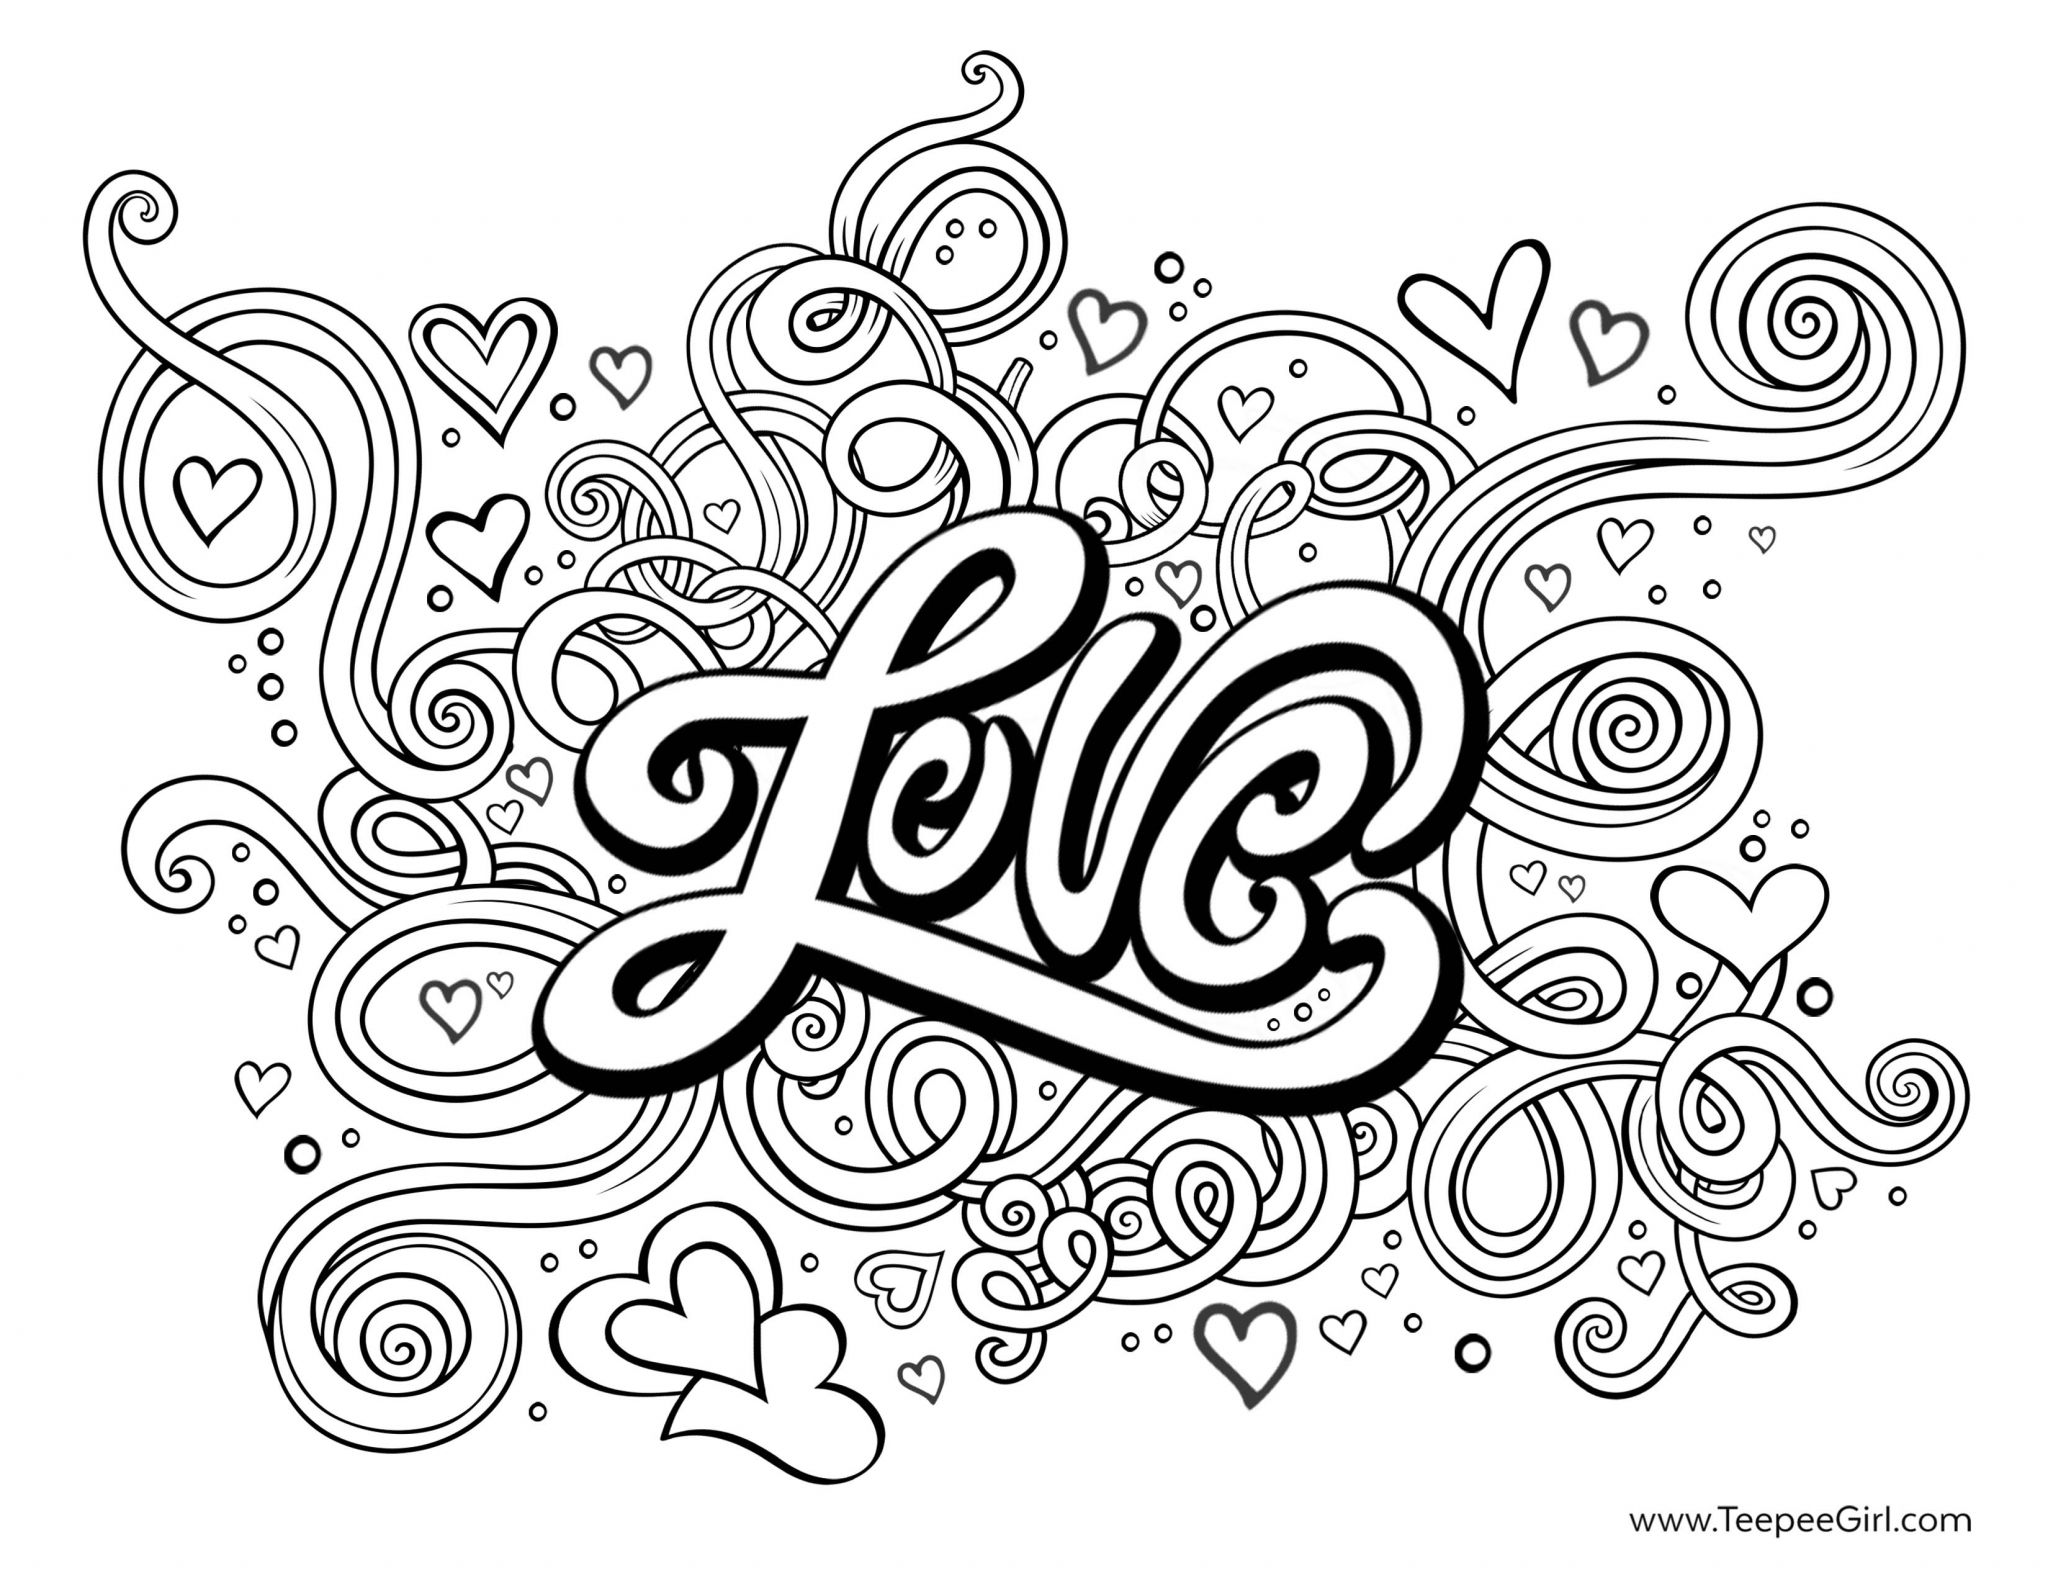 love hearts coloring pages - photo#1